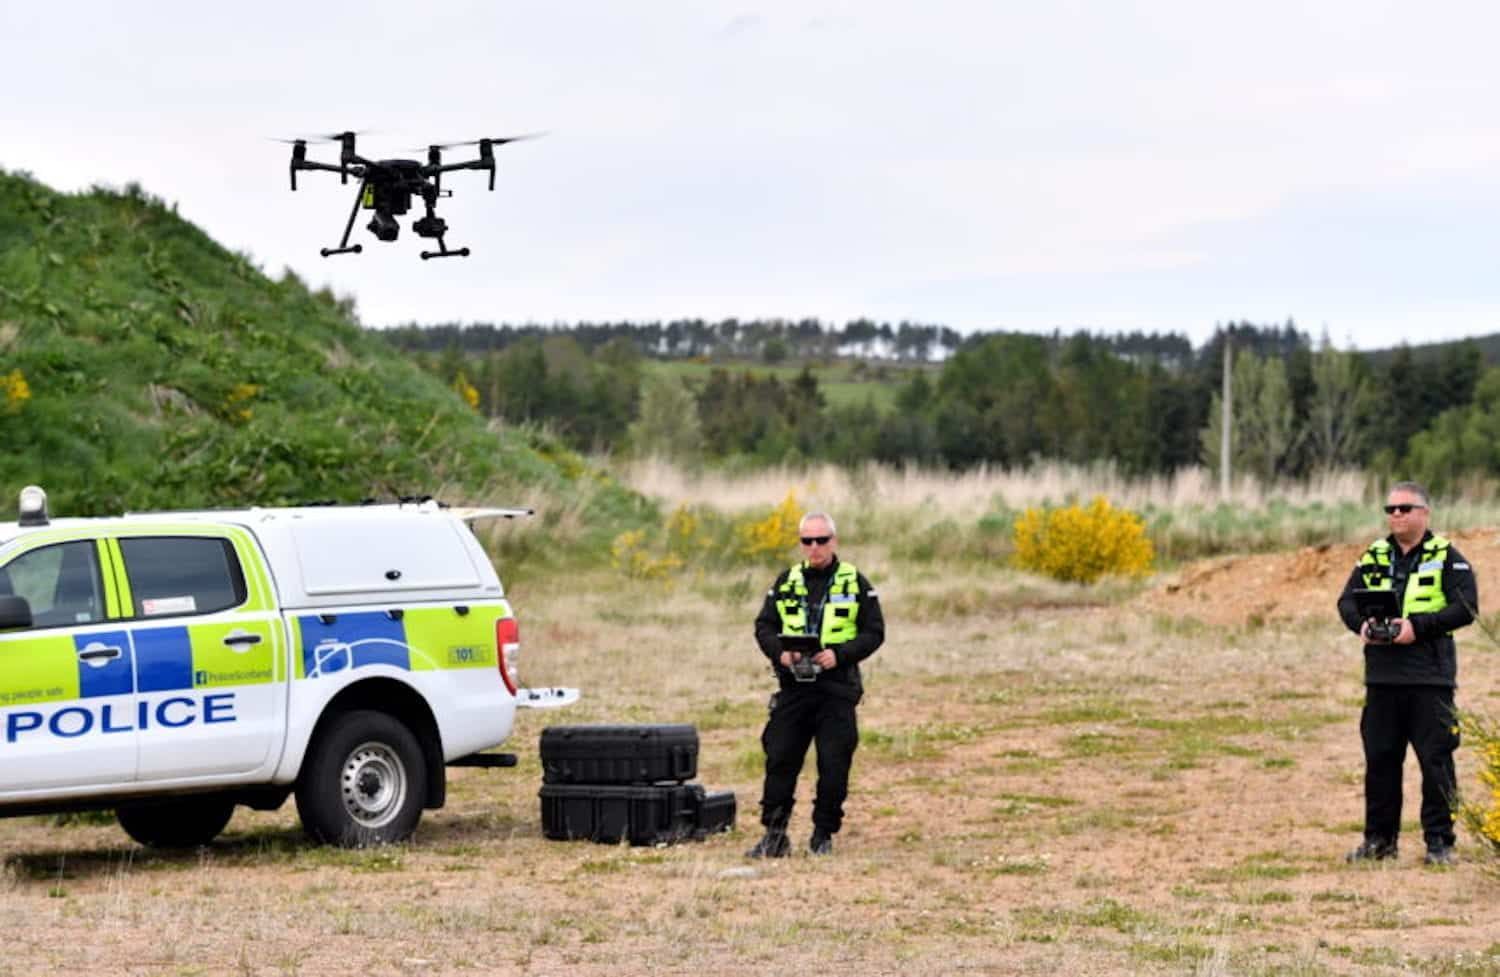 Police use drone in search for missing 74-year-old man